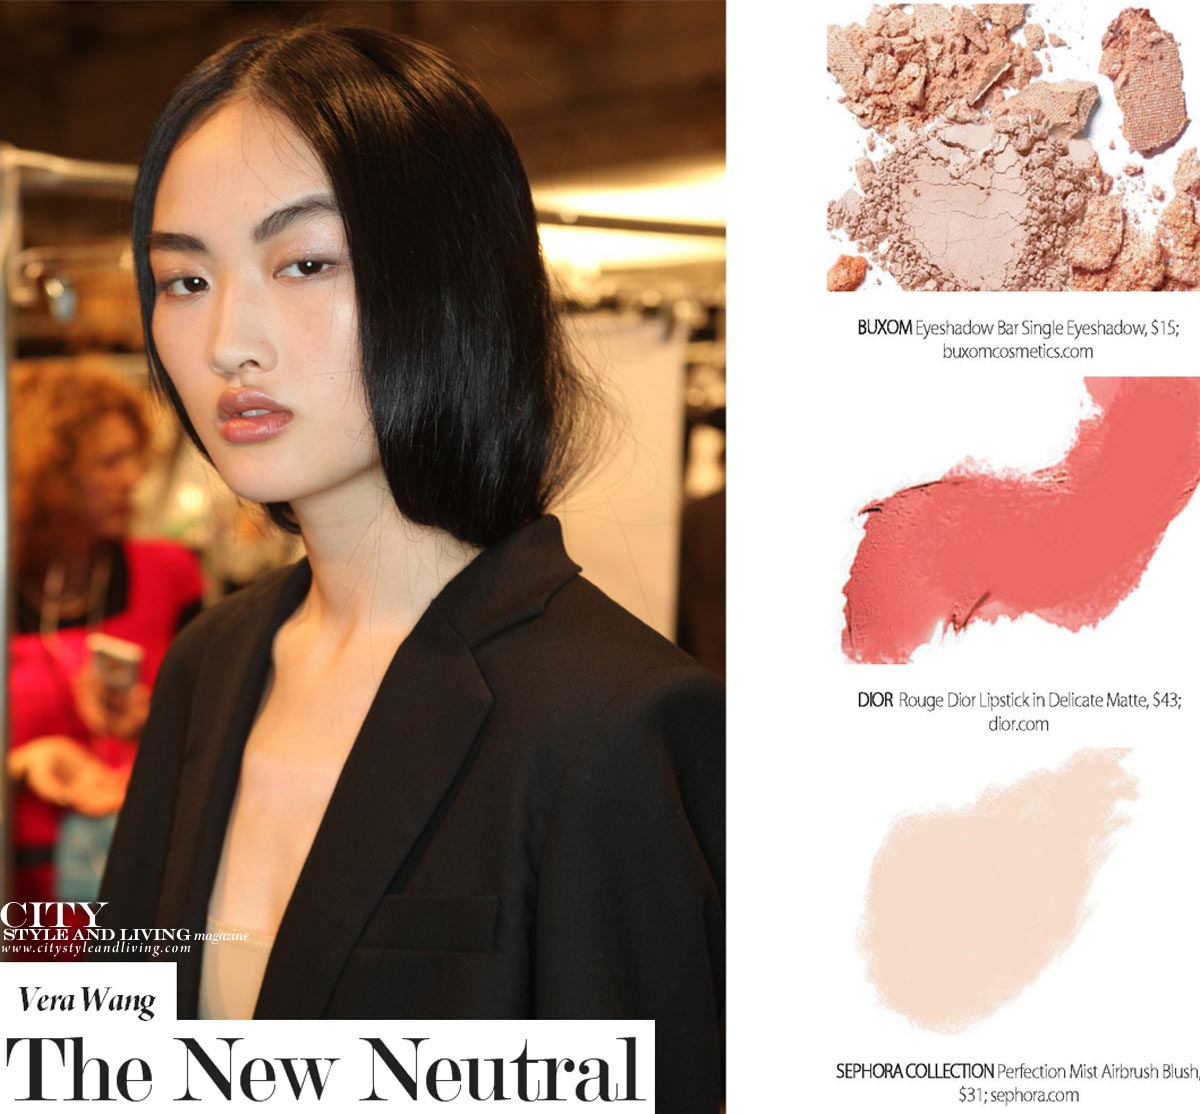 Beauty products to achieve The New Neutral makeup winter 2016 city style and living magazine